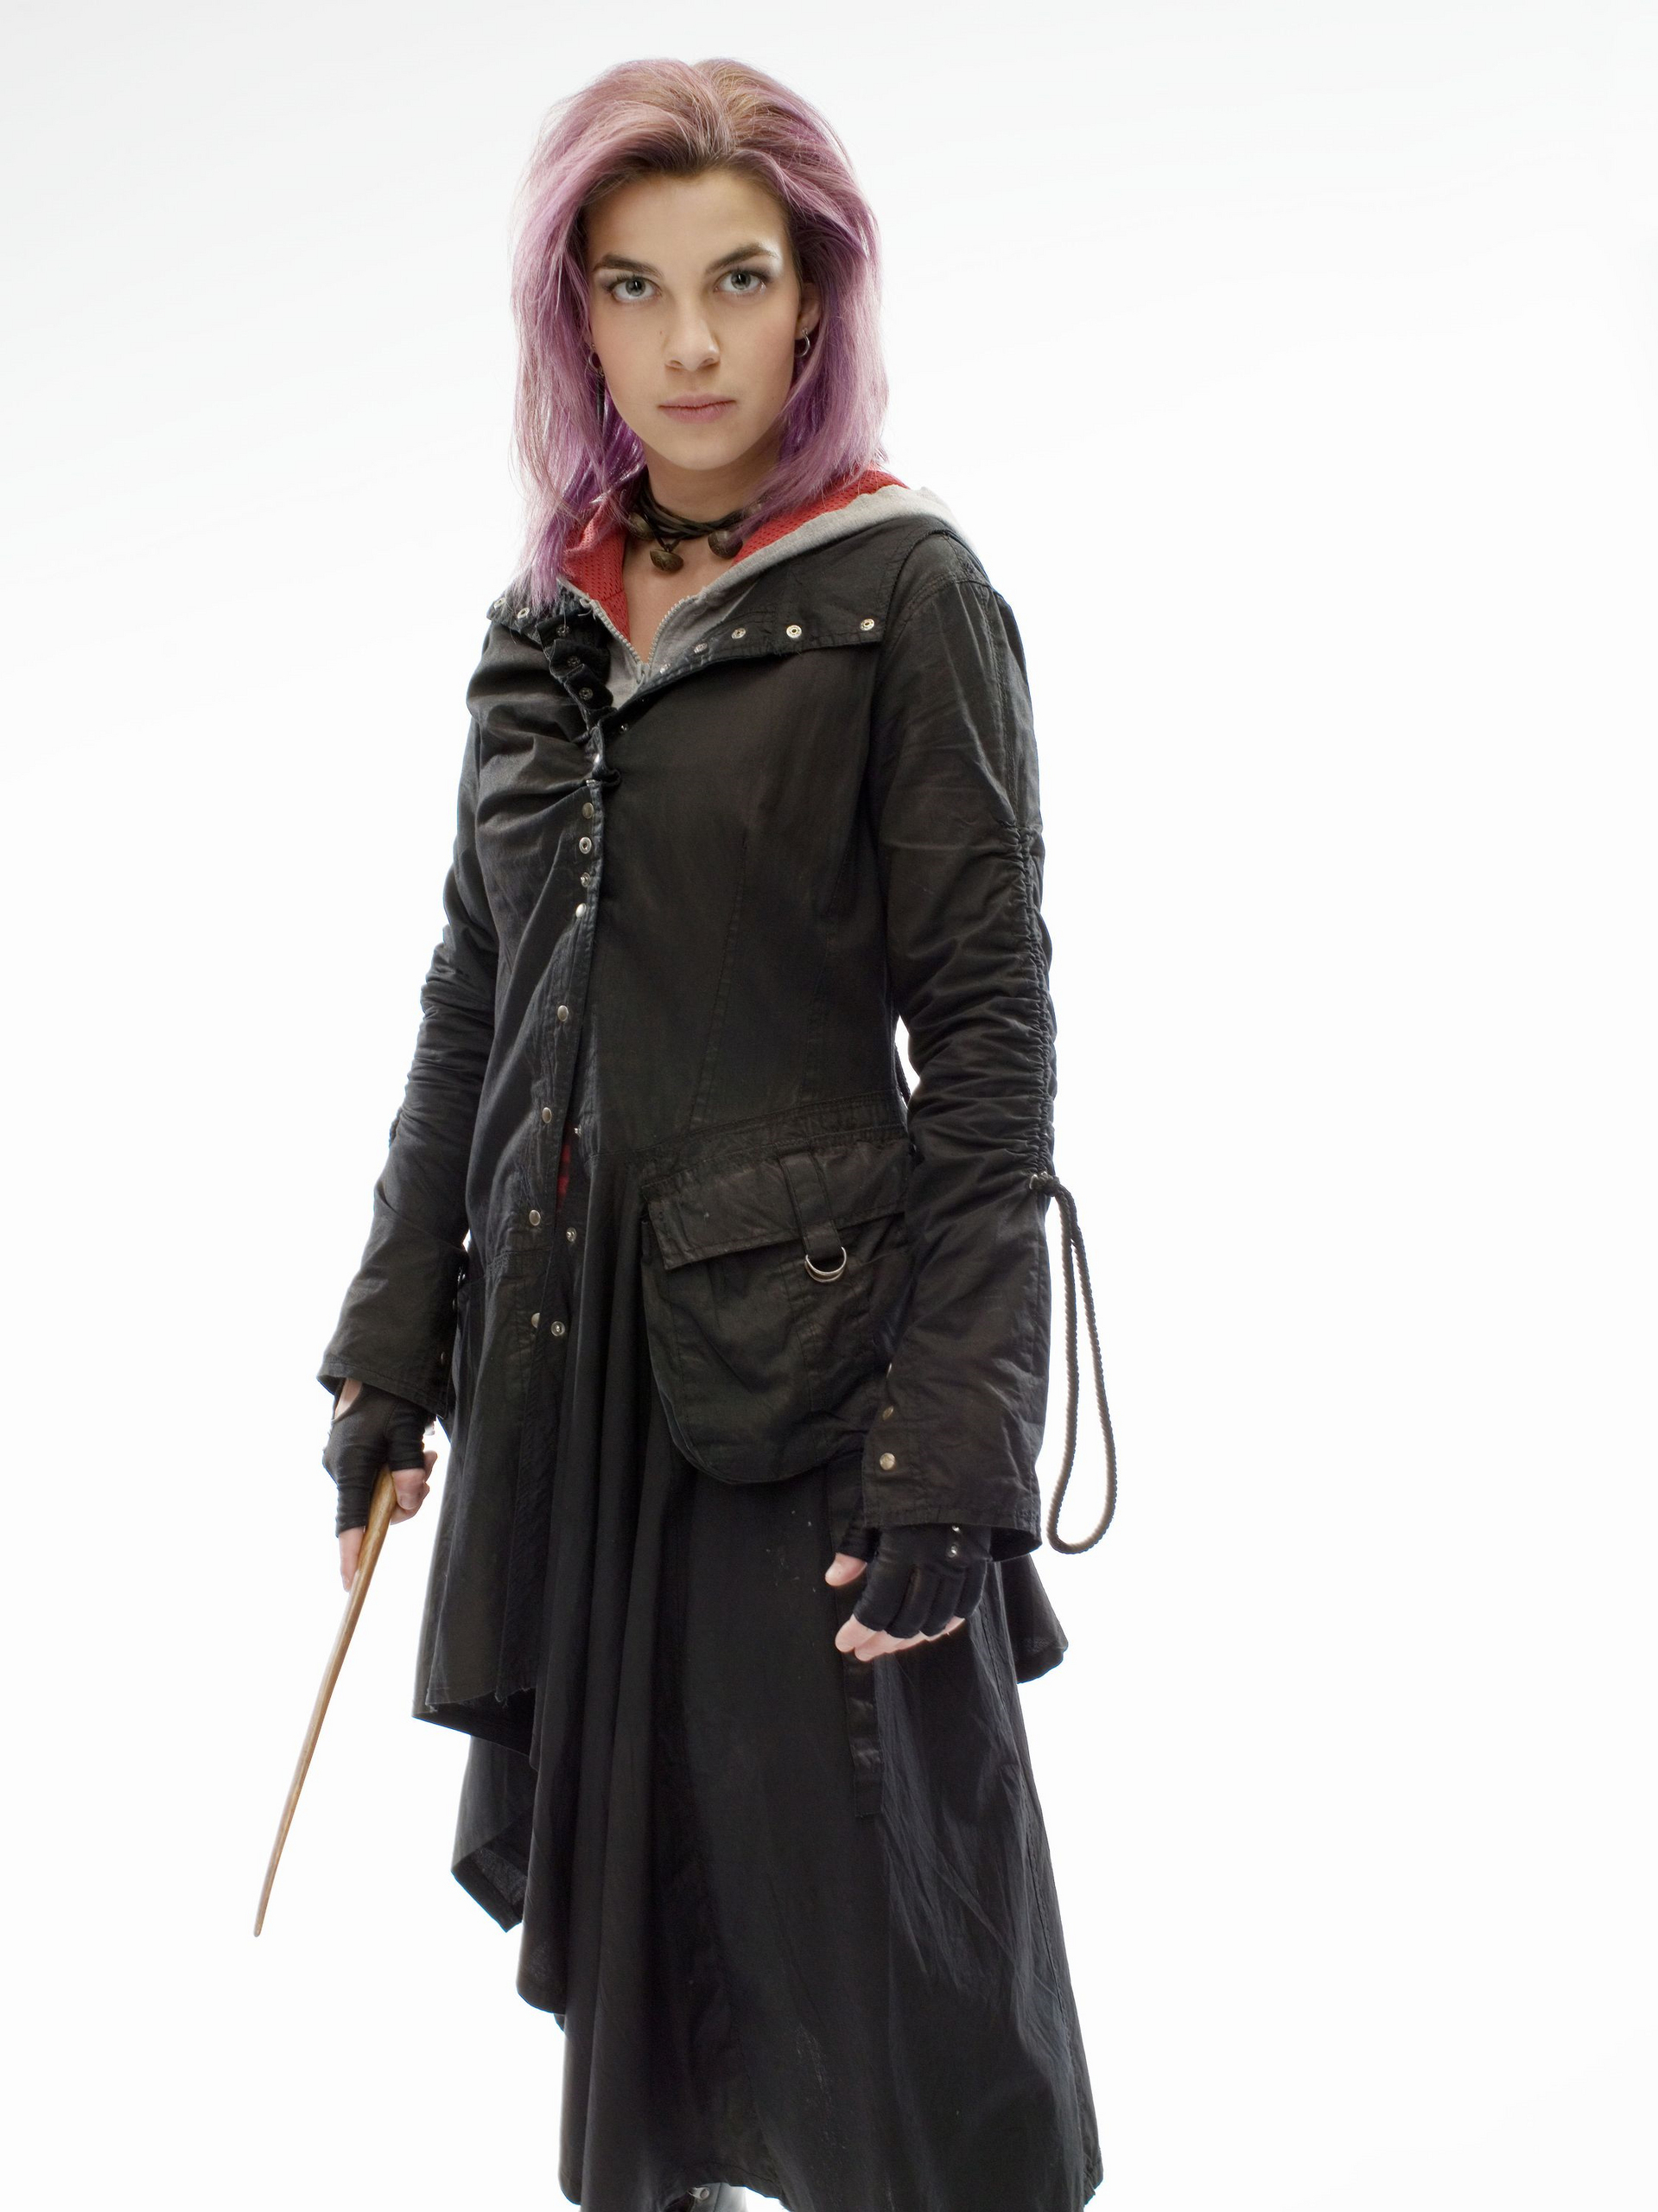 tonks harry potter